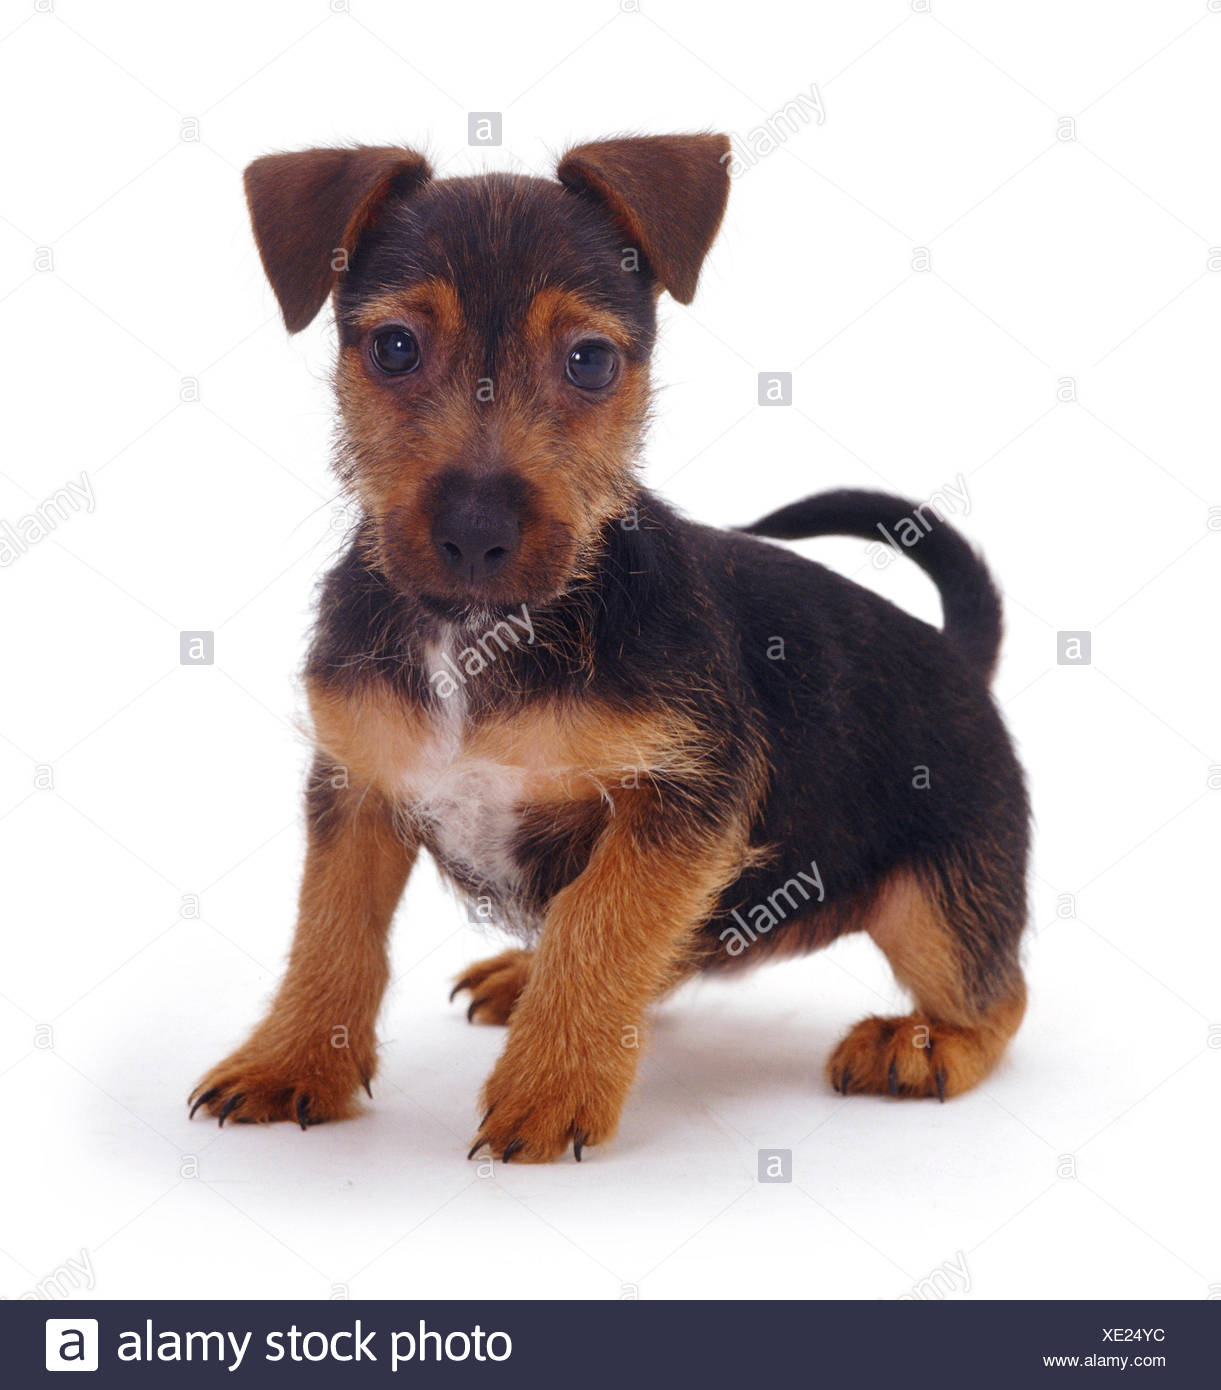 Rough Coated Jack Russell Terrier Puppy Black And Tan Portrait Stock Photo Alamy